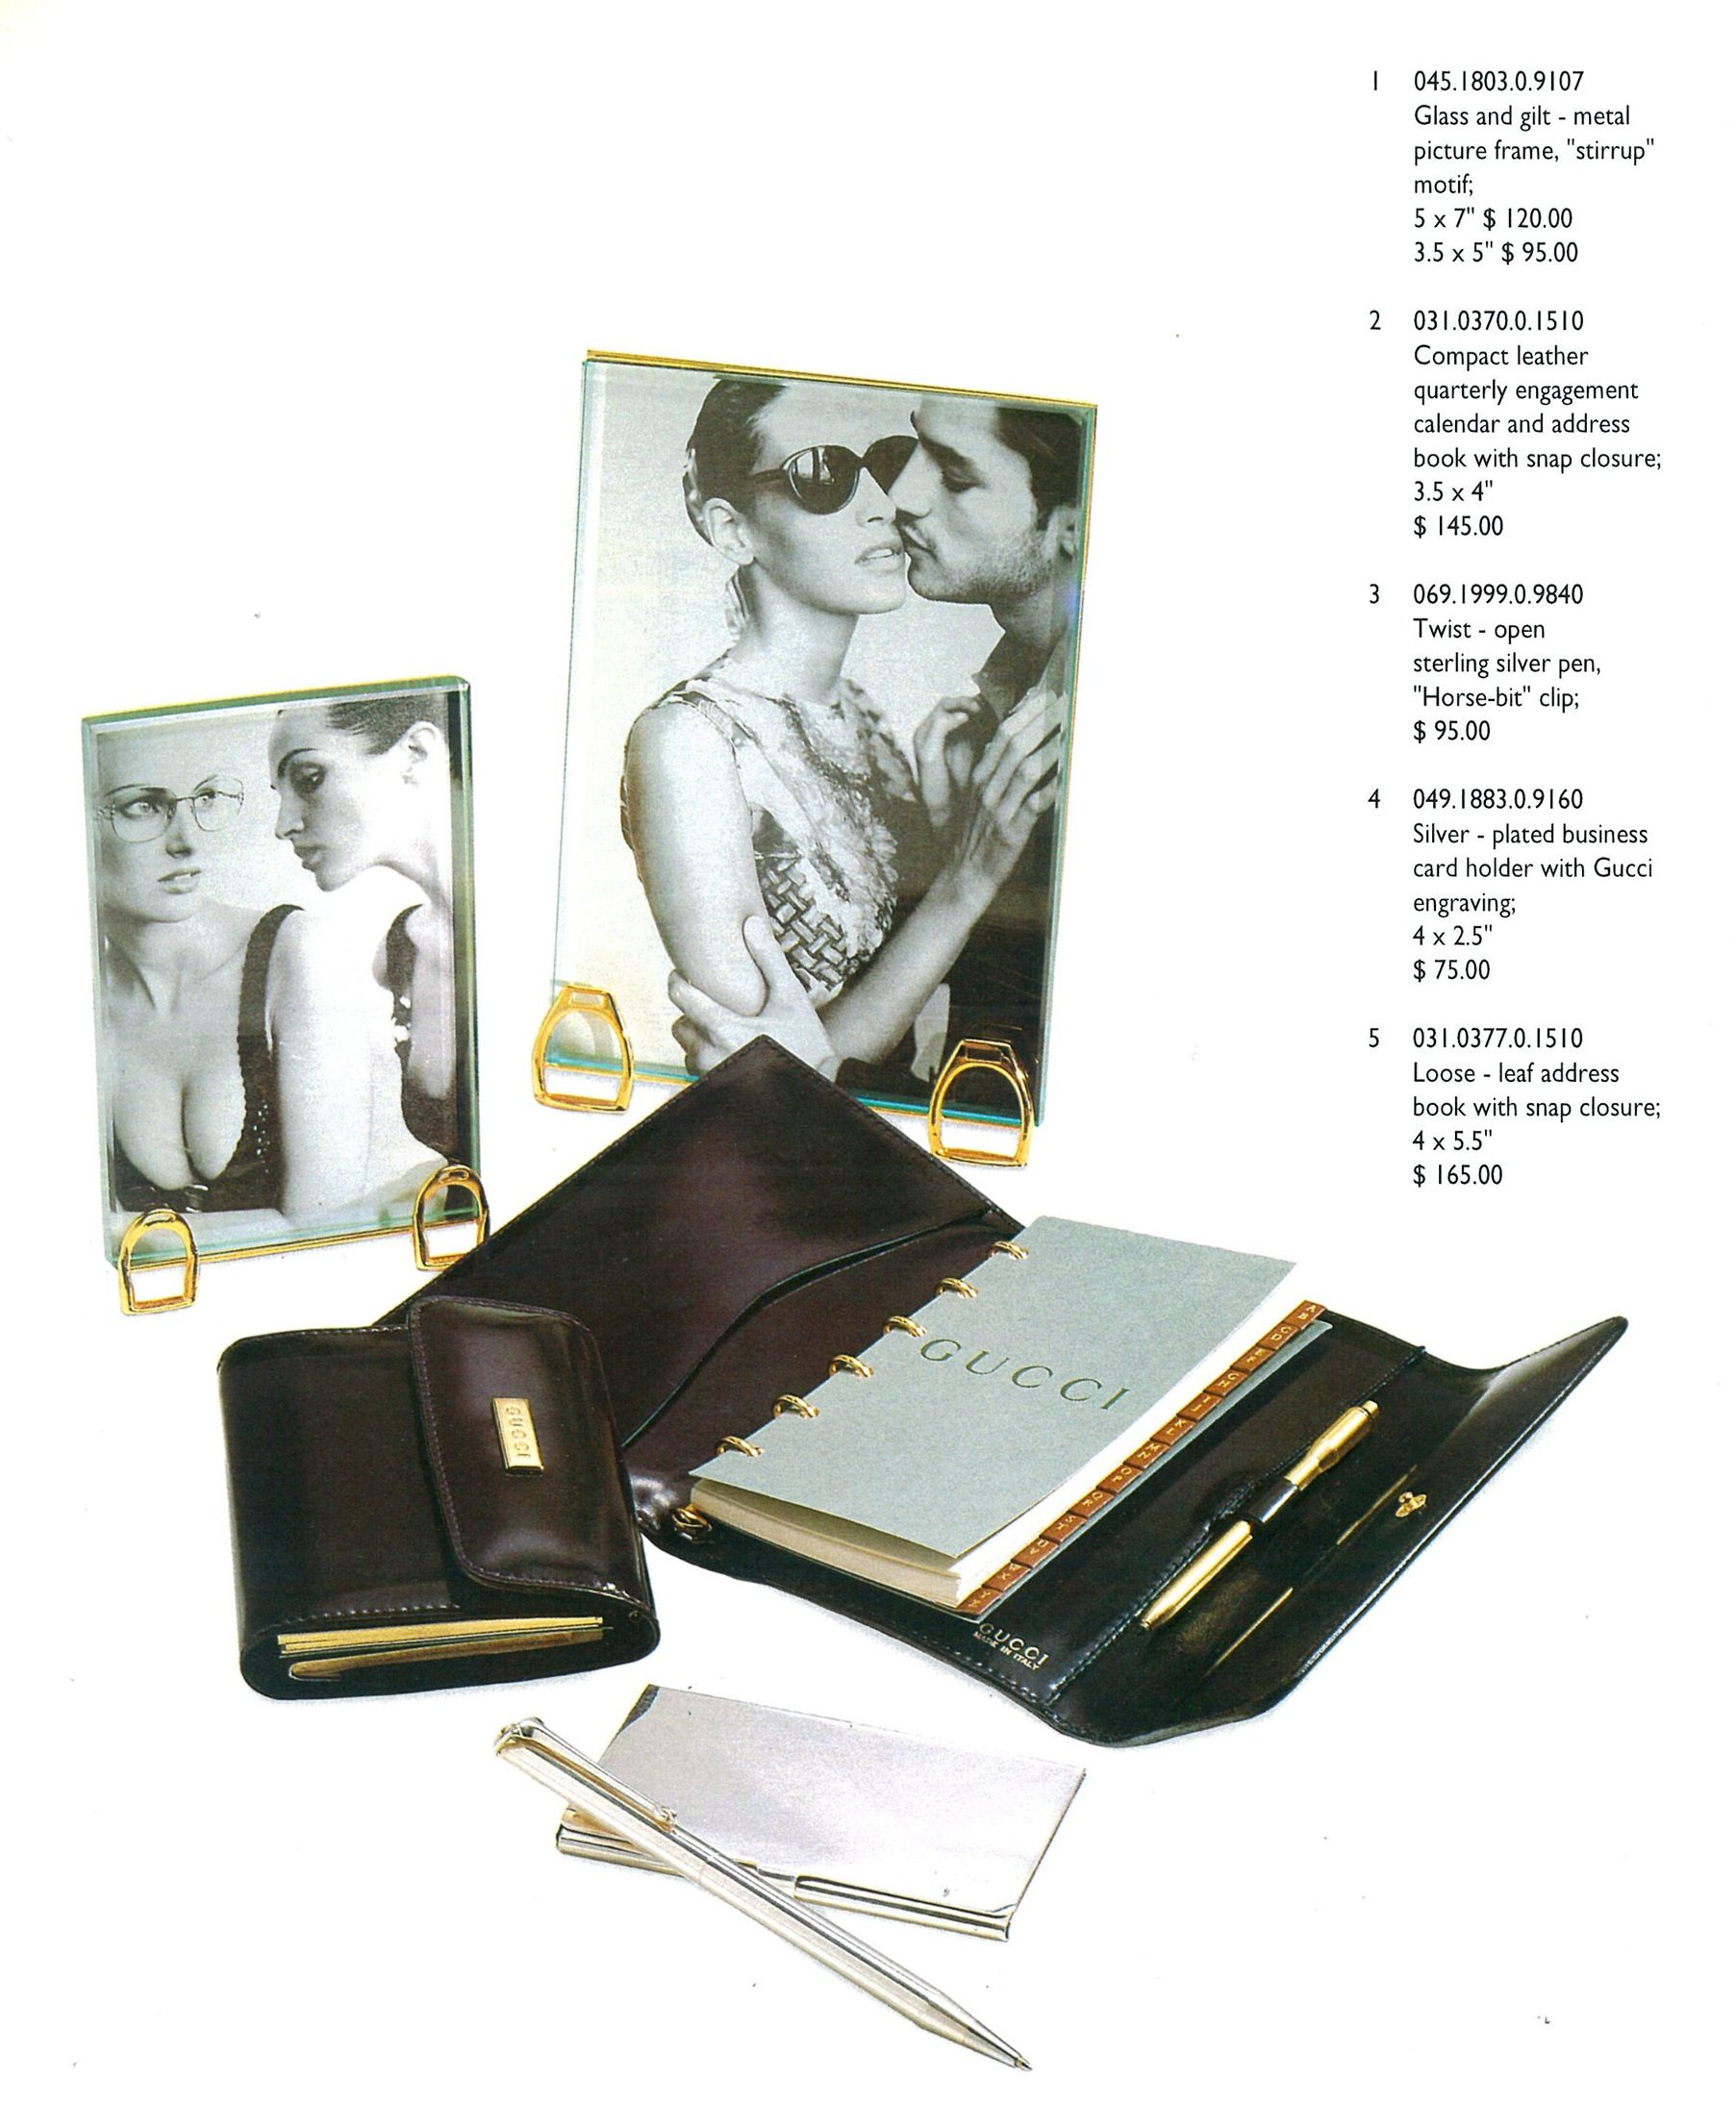 From The Gucci Gifts Regali Pricelist 1995 Catalog. With